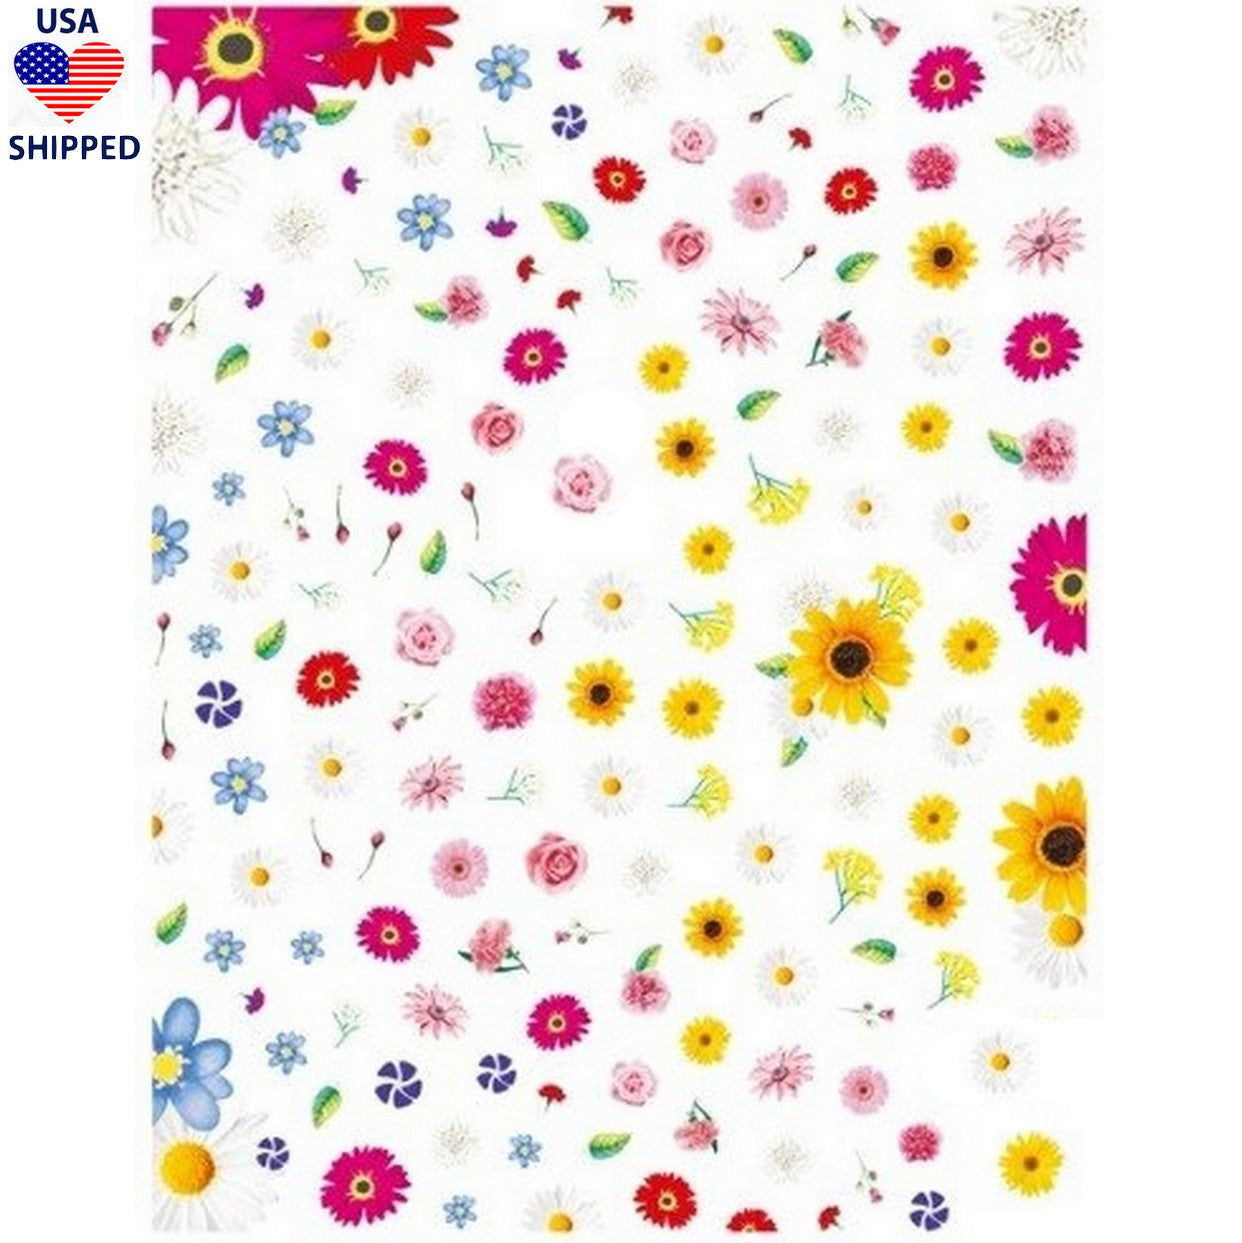 (USA) Floral Mix Nail Stickers